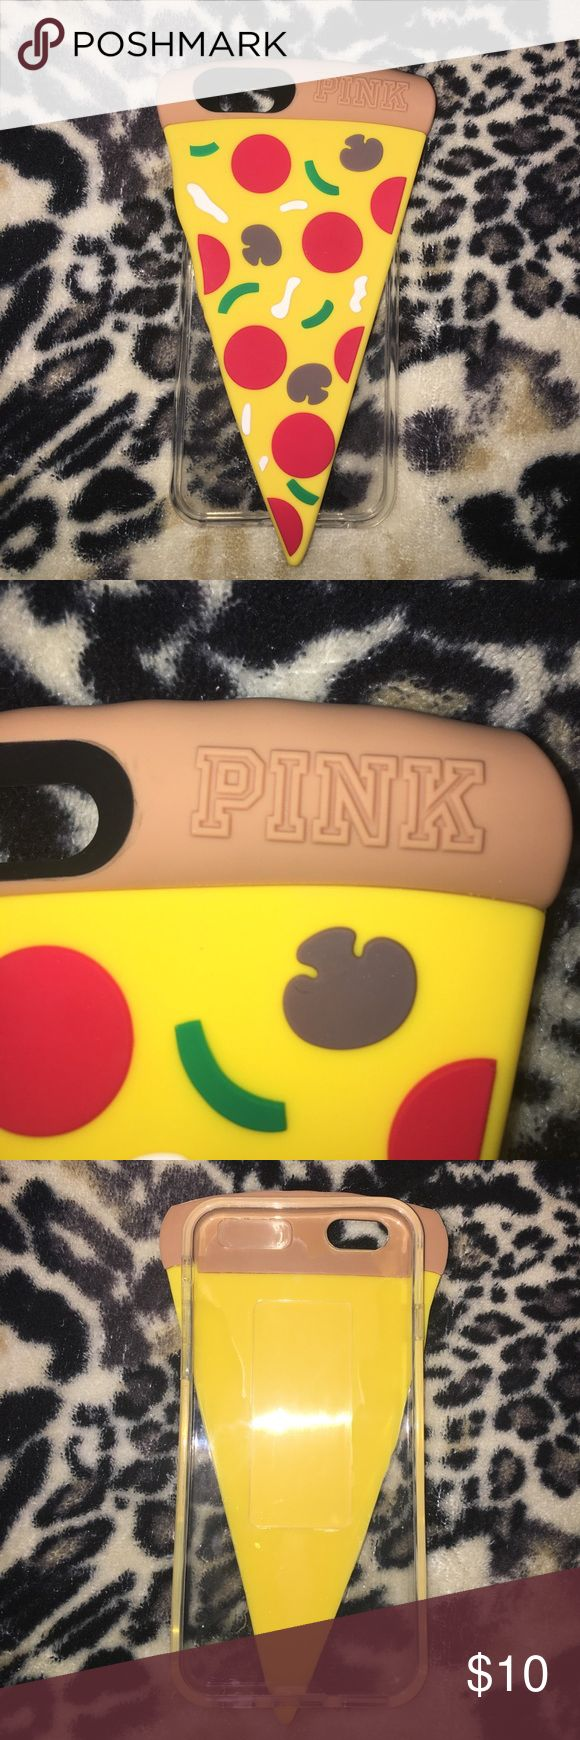 VS PINK iPhone case! NWT! Pizza slice phone case for iPhone 6/6S! New, never used with plastic wrap & sticker tag. Fun & cute! Durable & flexible plastic. PINK Victoria's Secret Accessories Phone Cases